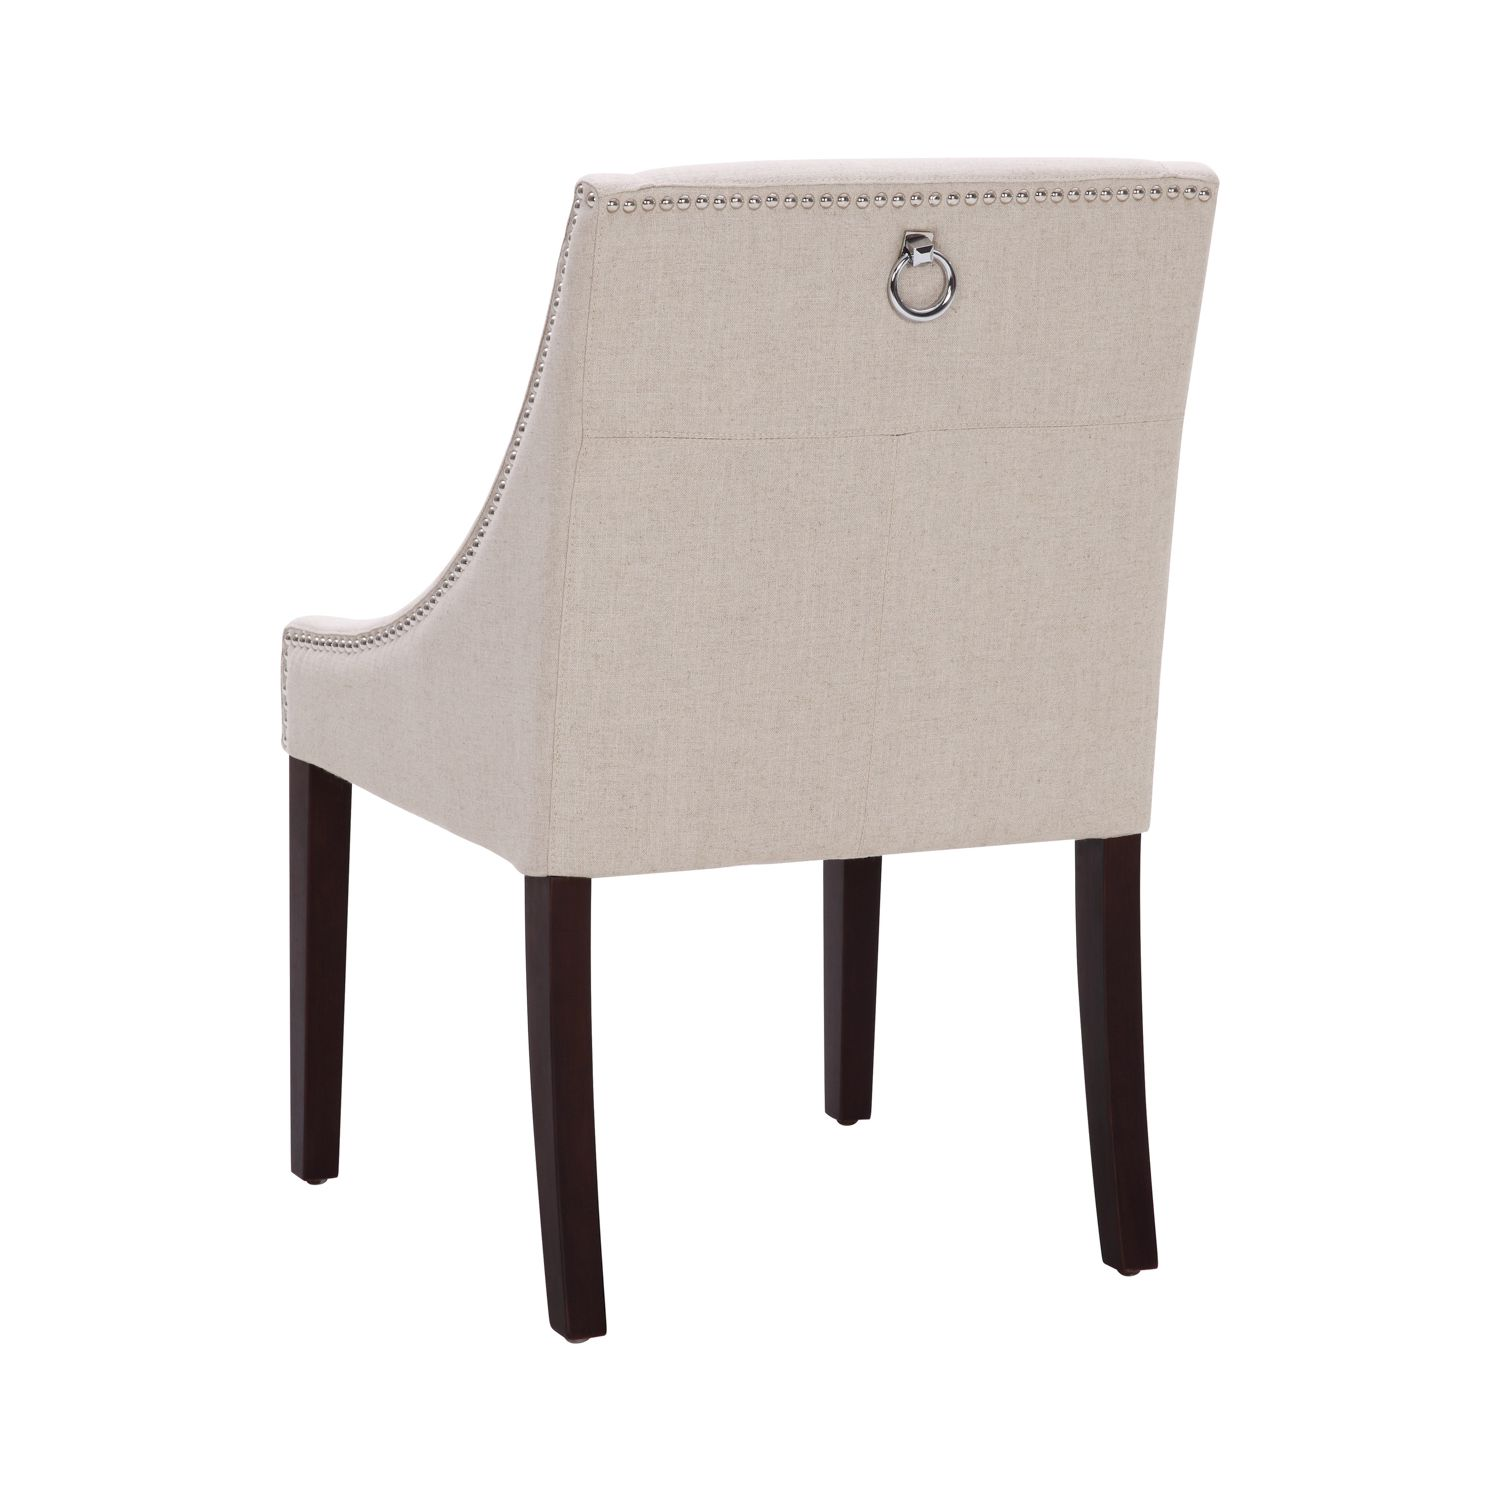 fabric dining chairs with nailheads. lucille dining chair in linen look fabric w/ silver nail heads chairs with nailheads